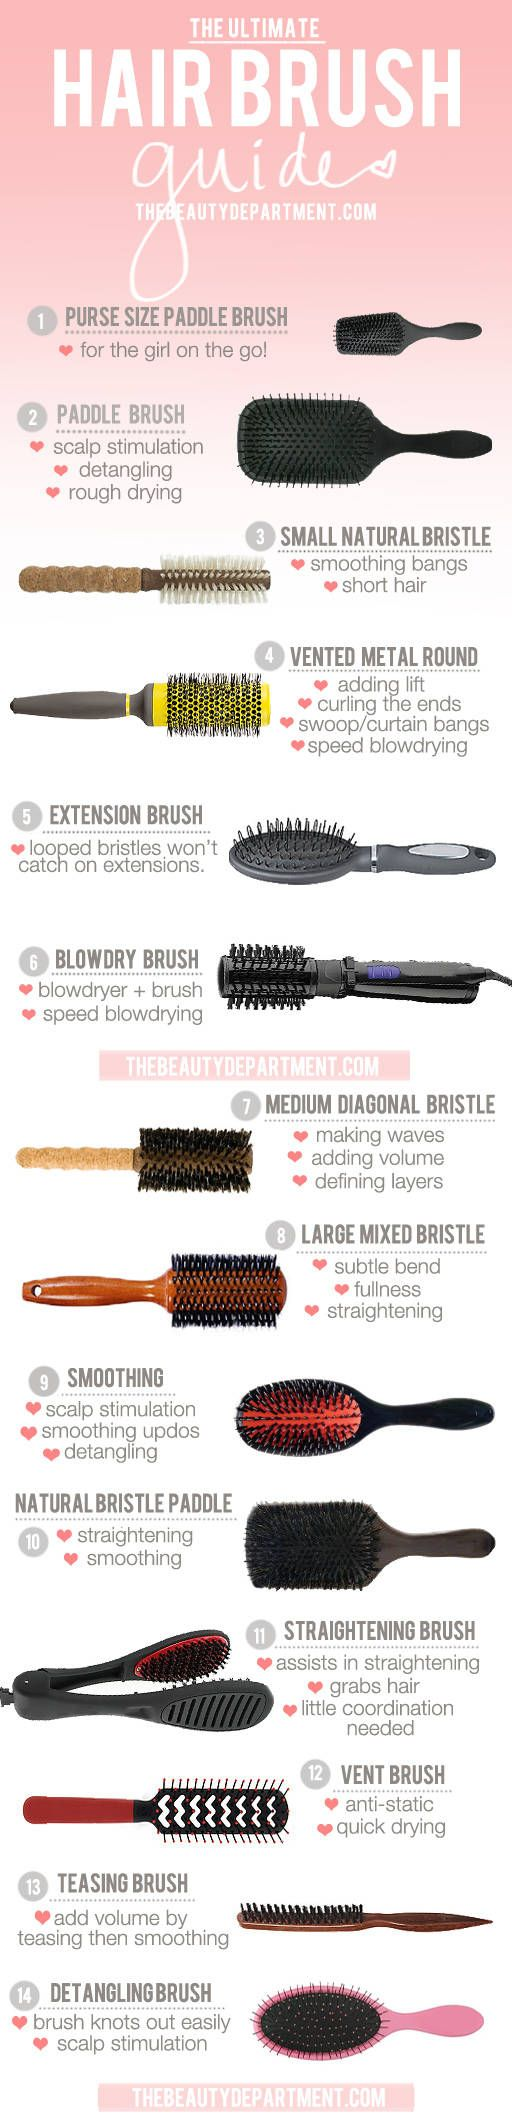 Good to know: which hairbrush does what....